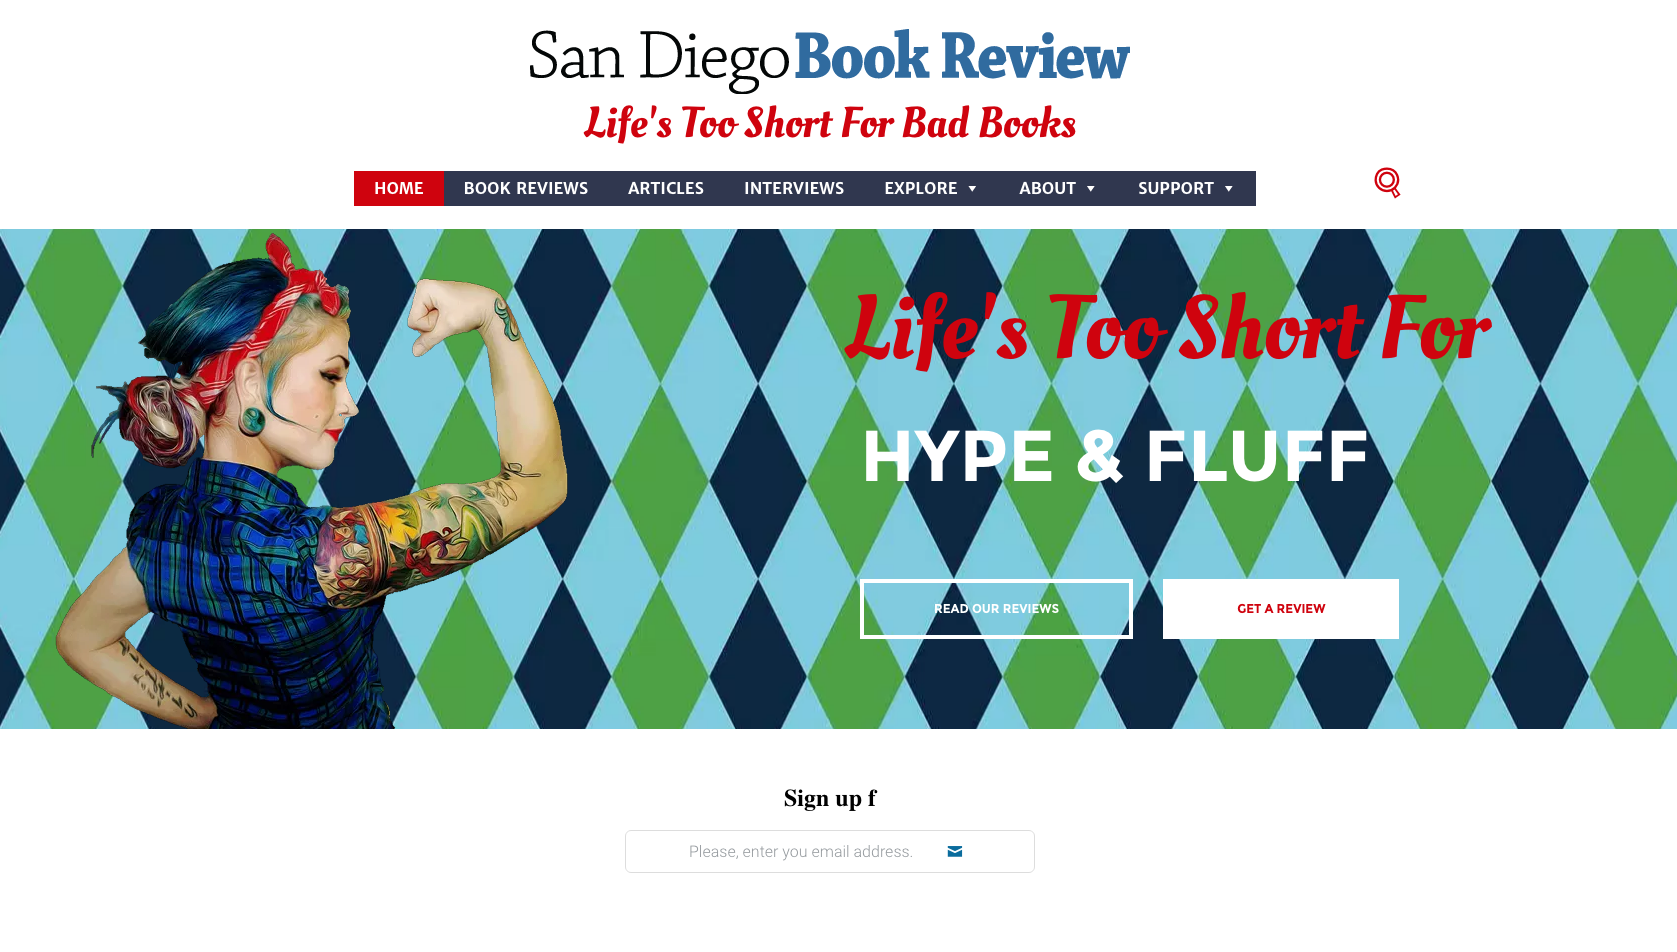 sandiegobookreview